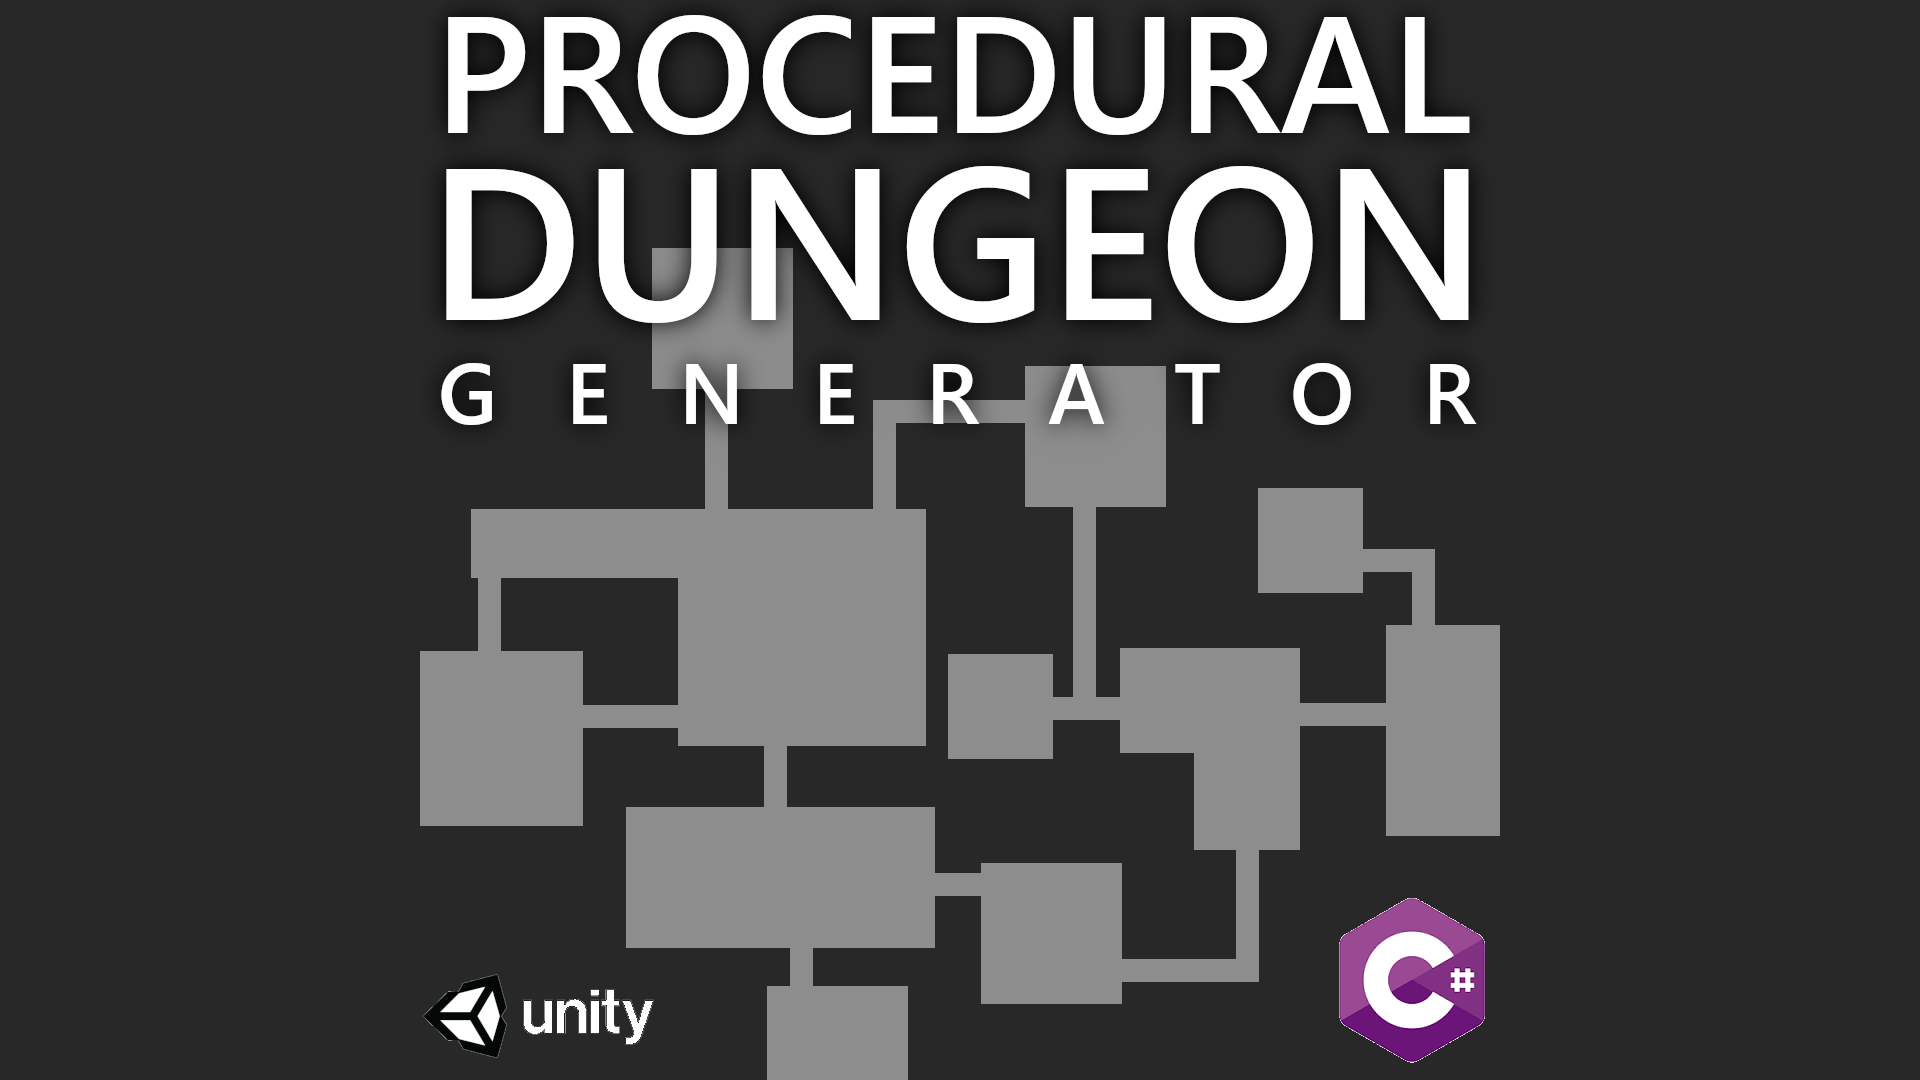 Procedural Dungeon Generator v1 0 (C# - Unity) by Copper Aardvark Games